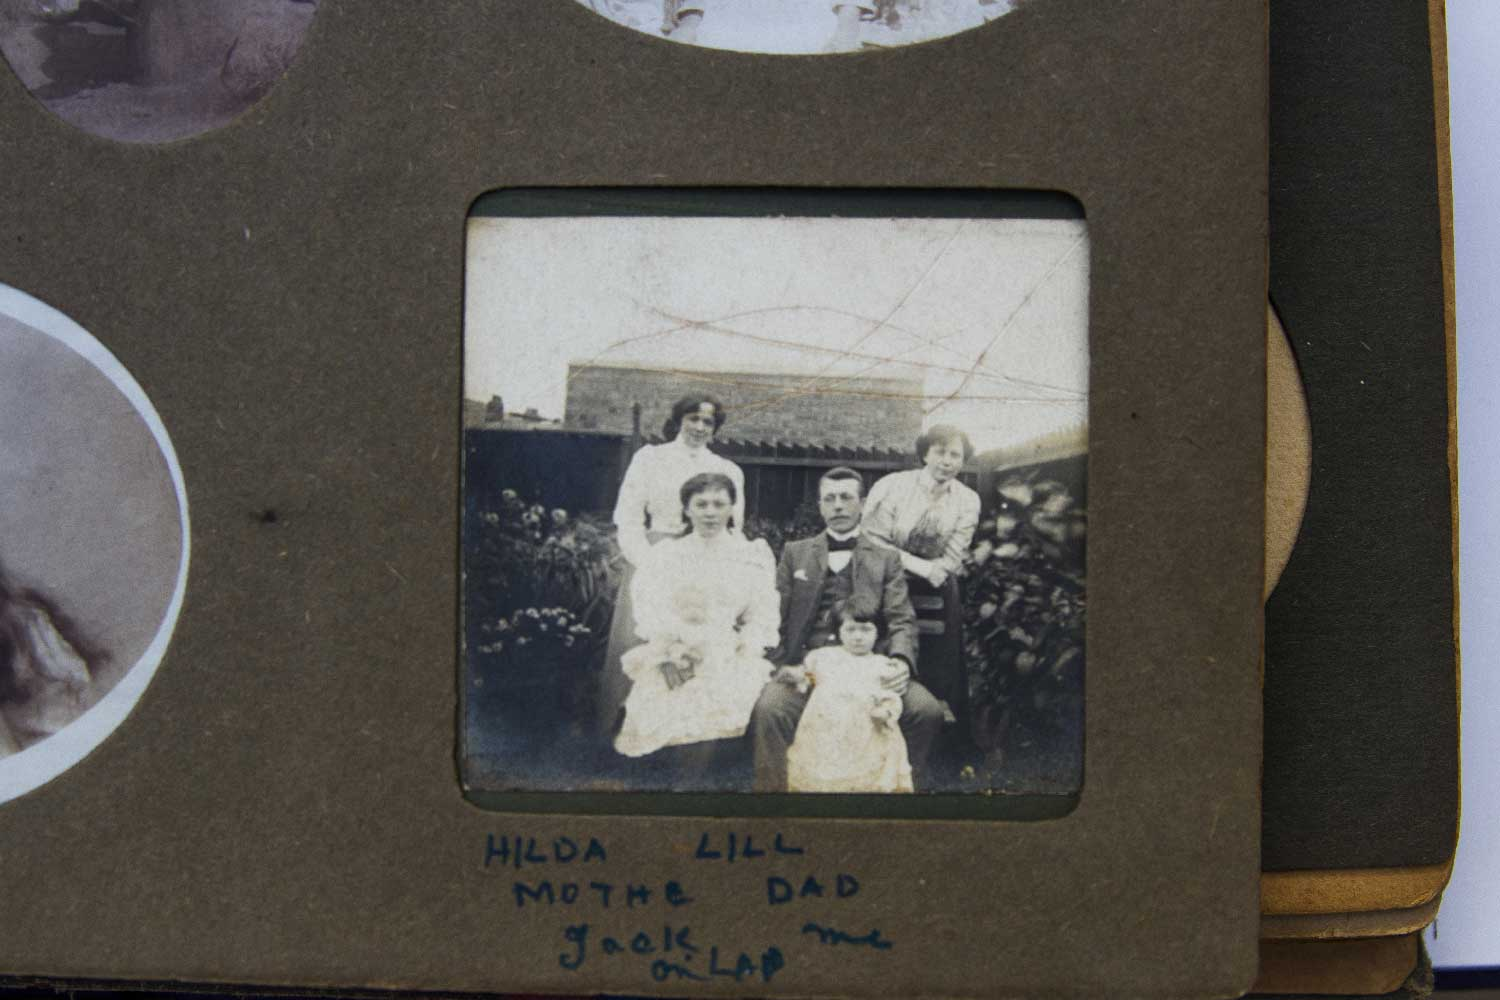 The three Suffragette Sisters. Left to right - (standing) Hilda Burkitt, (seated) Christobel Wood holding her baby son Jack, next to husband, Frederick George Wood holding daughter Kathleen, (standing) Lillian Burkitt. Date unknown, possibly around 1905 - Image Credit Lesley Cain, Jane Wood & Lauren Hall ( Great, Great / Great Nieces )